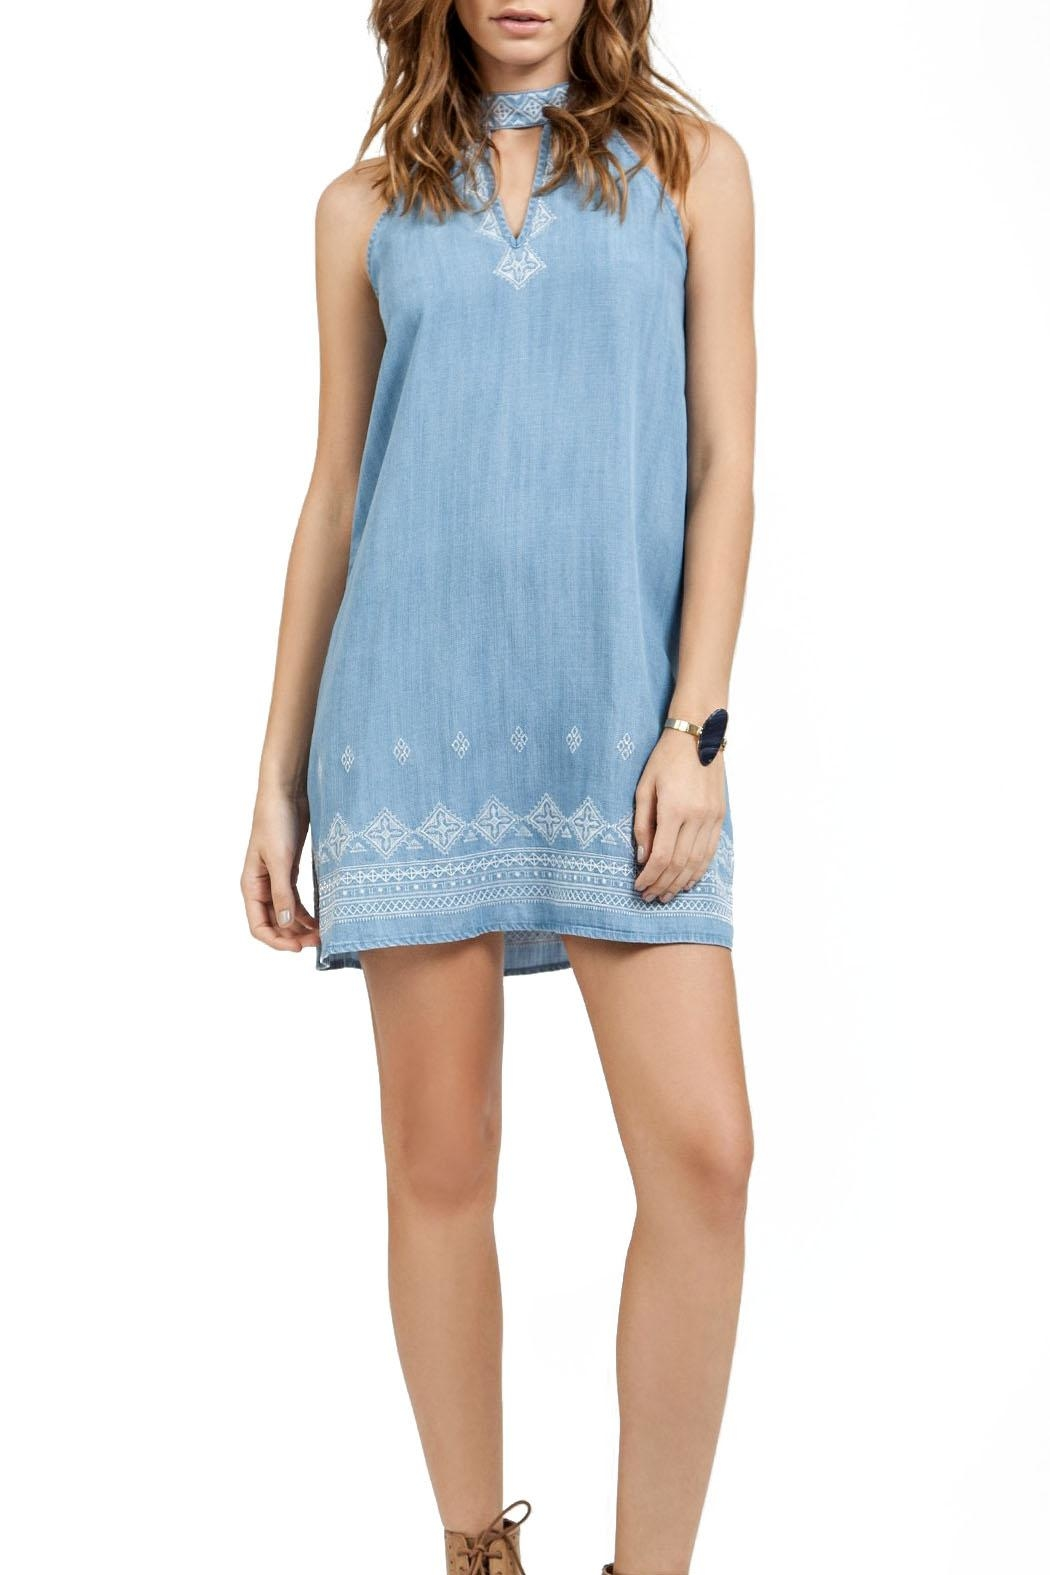 Blu Pepper Embroidered Short Dress - Front Cropped Image